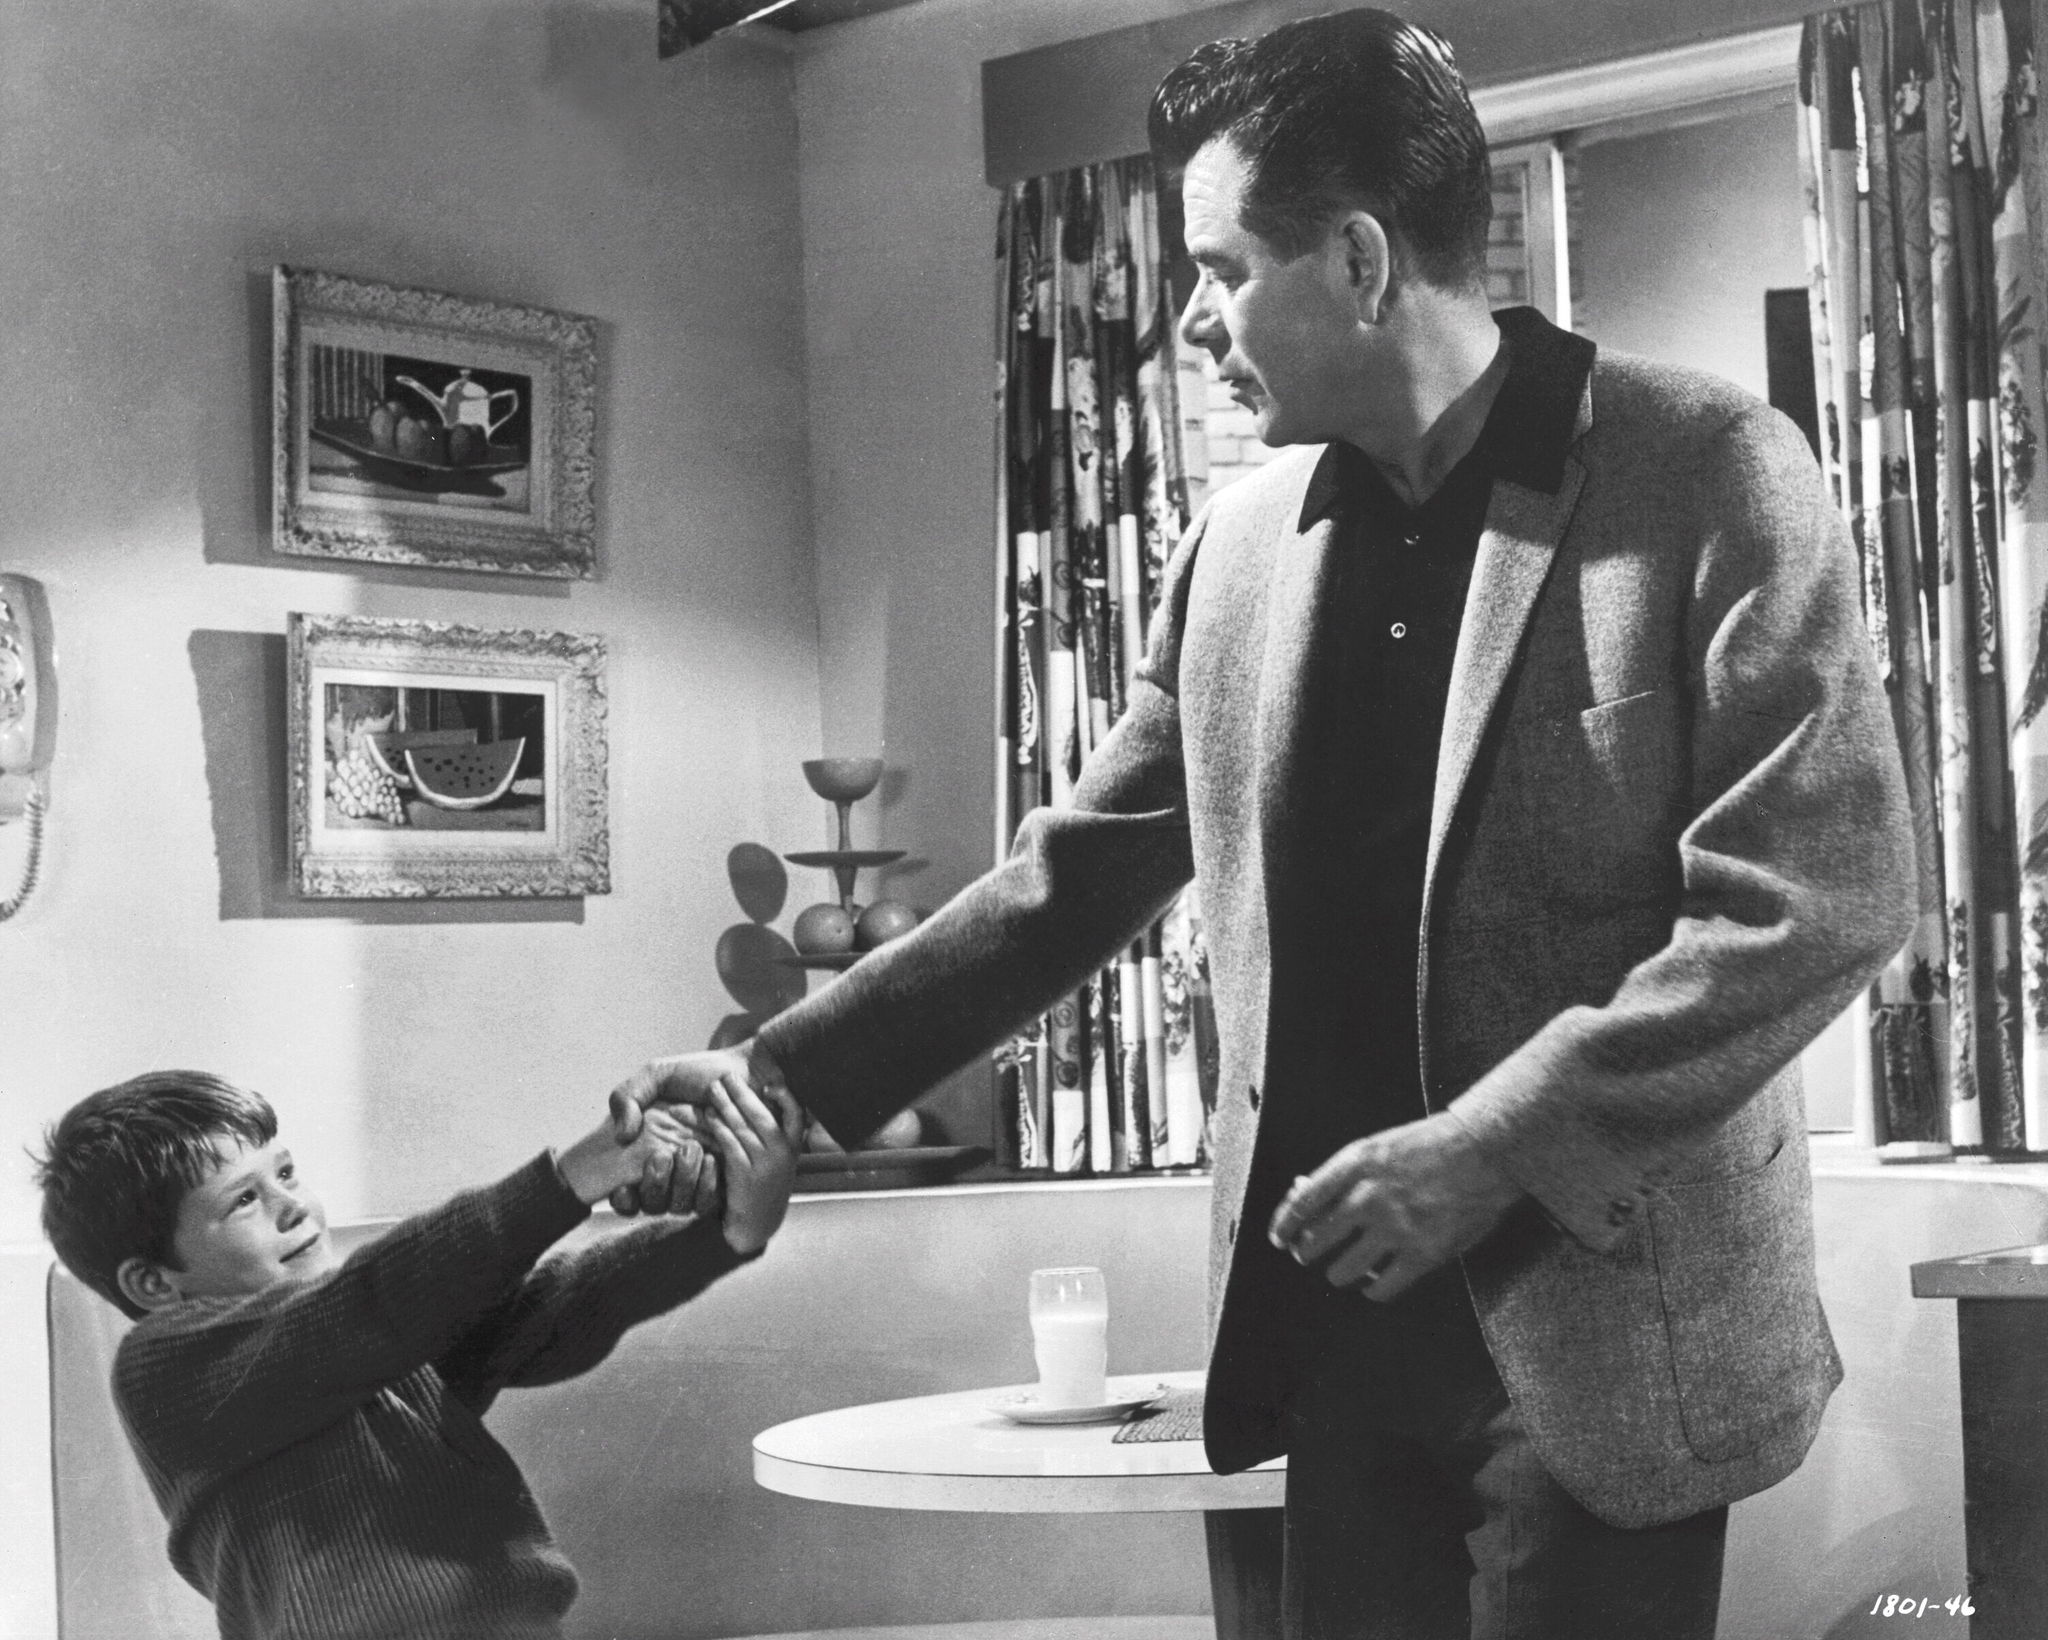 Ron Howard and Glenn Ford in The Courtship of Eddie's Father (1963)